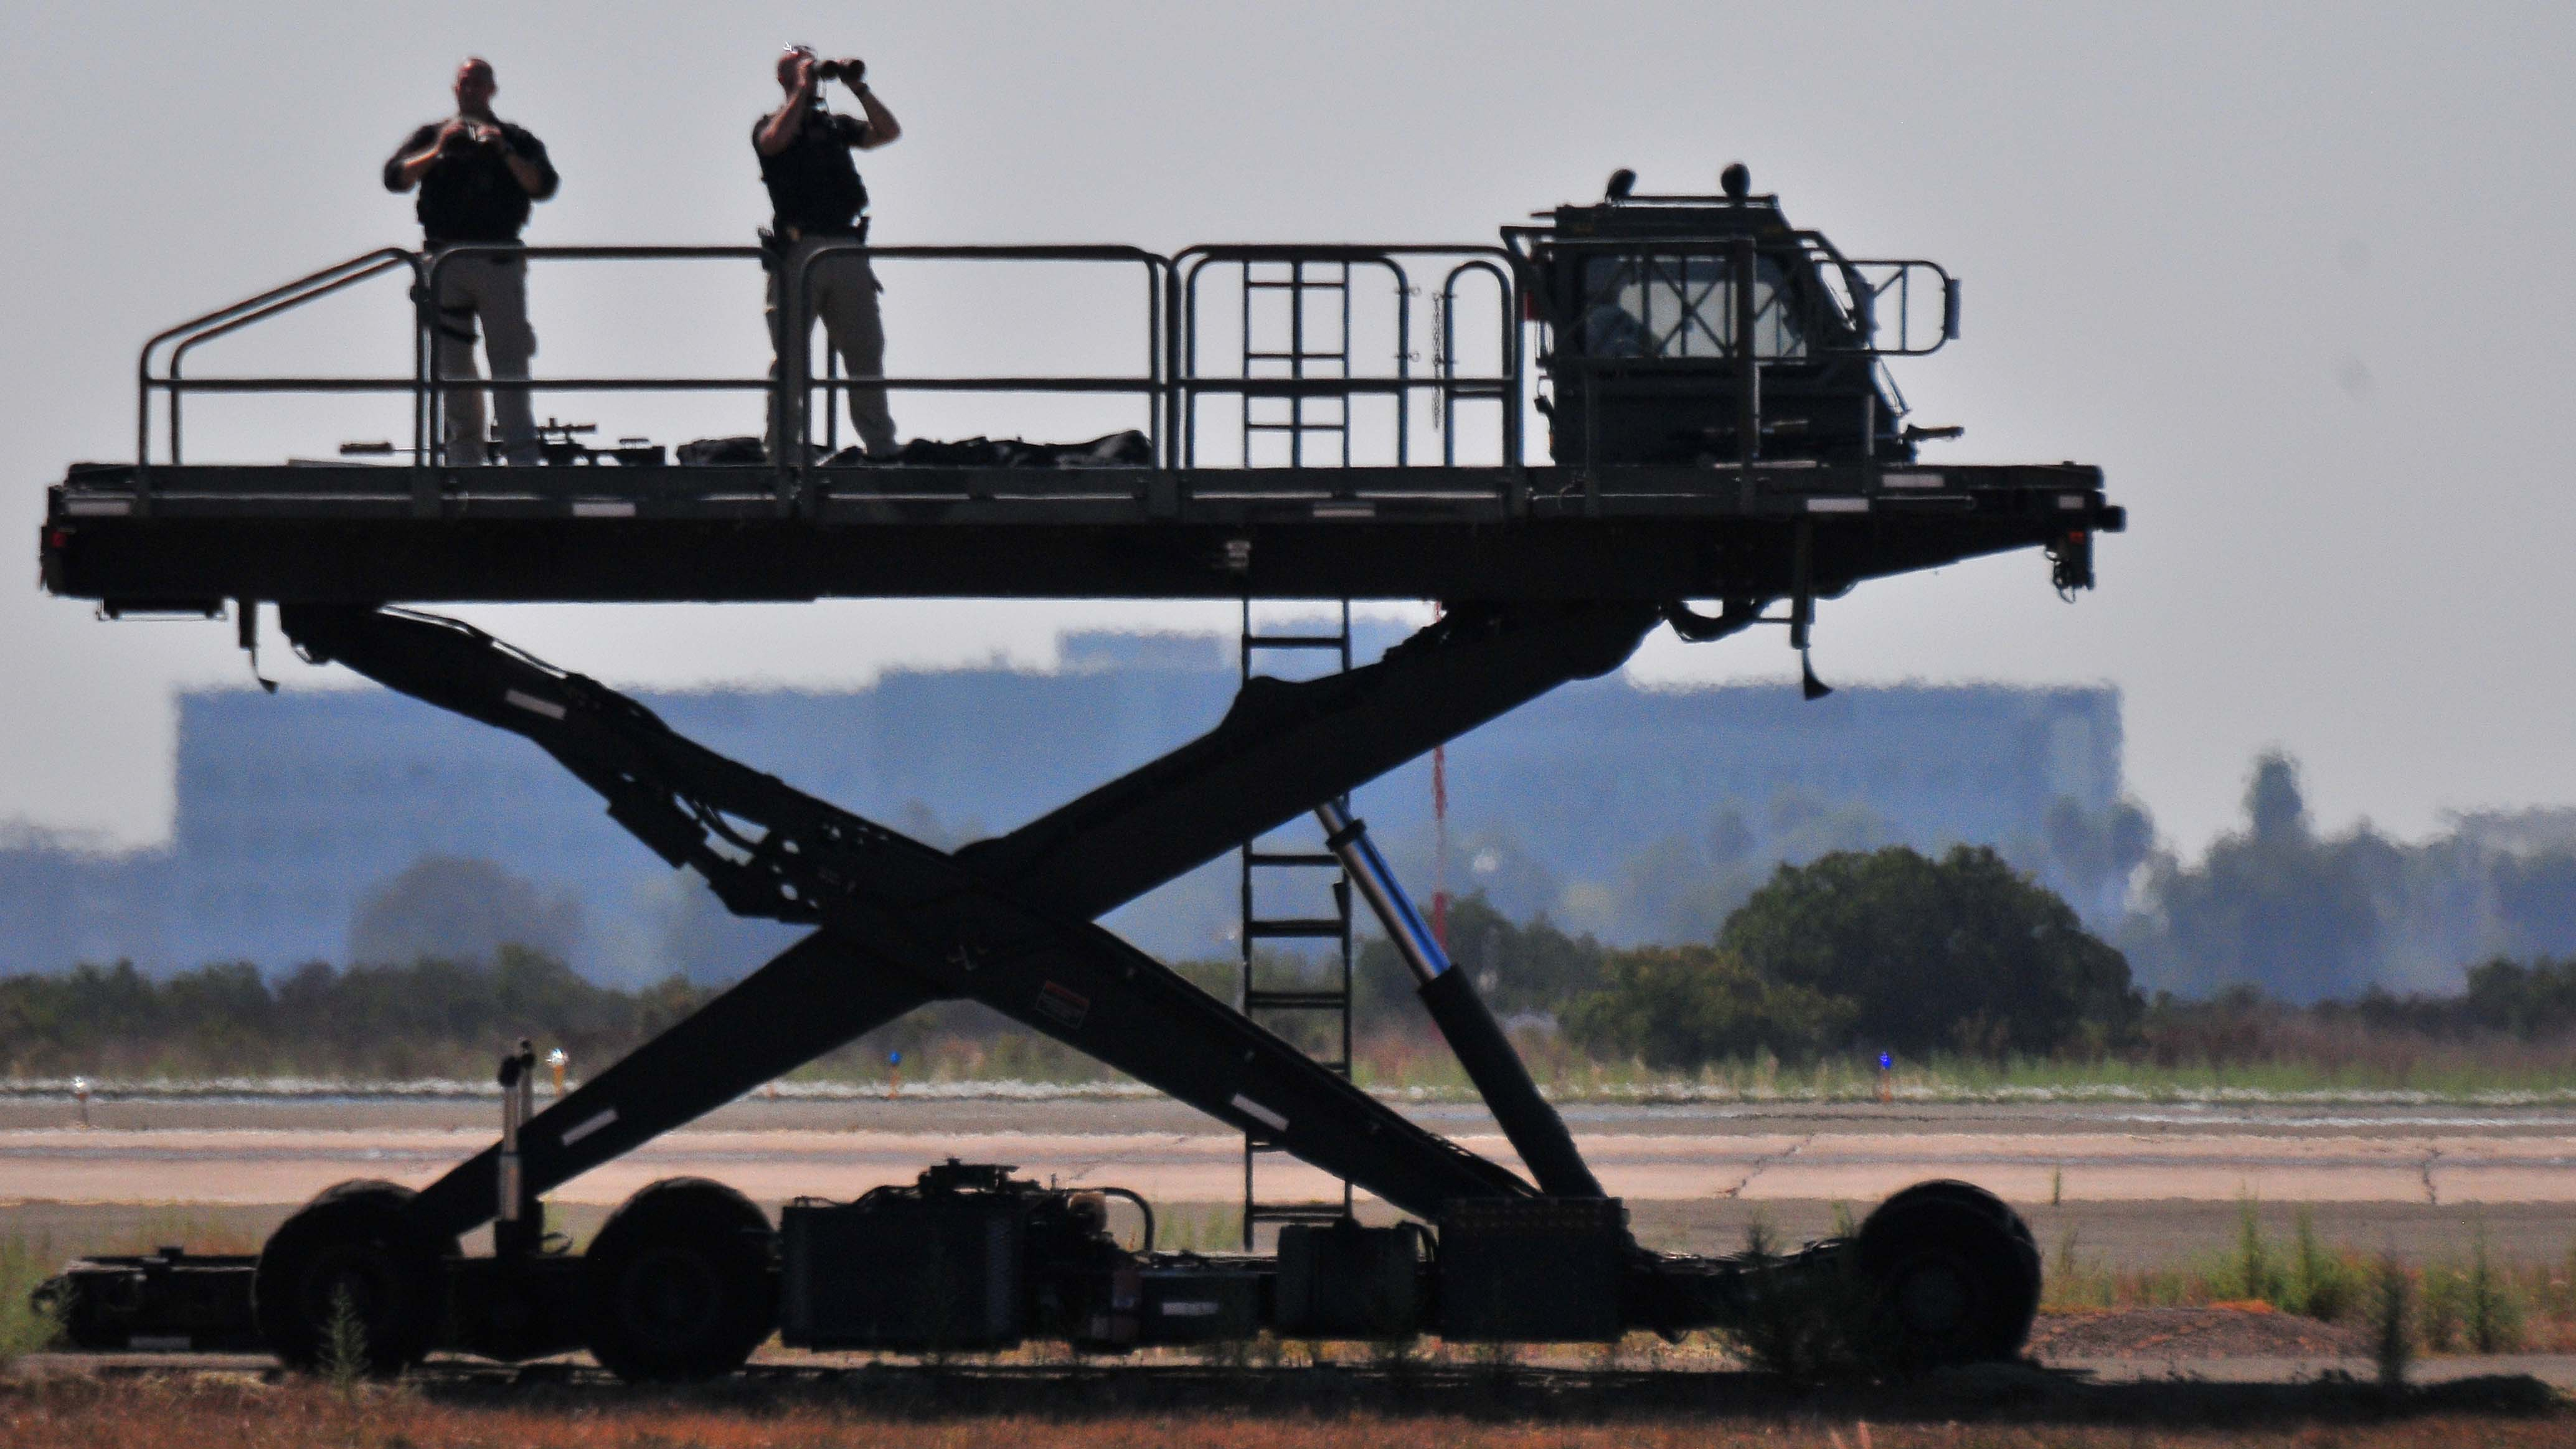 Elevated platform offered security a high vantage point at Miramar base.